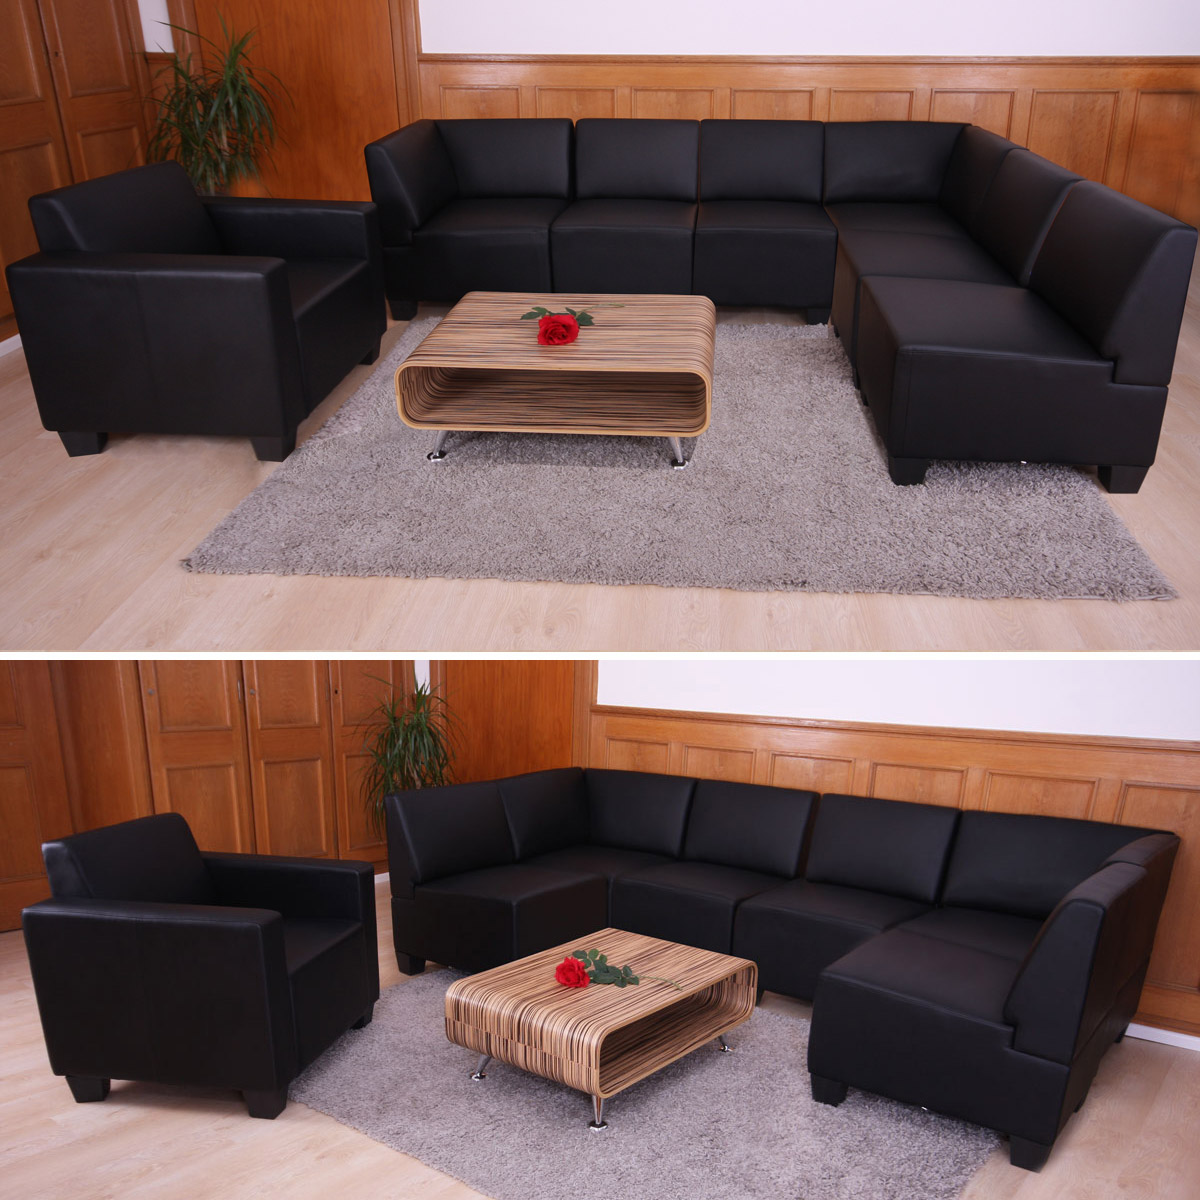 modular sofa system couch garnitur lyon 6 1 kunstleder schwarz. Black Bedroom Furniture Sets. Home Design Ideas